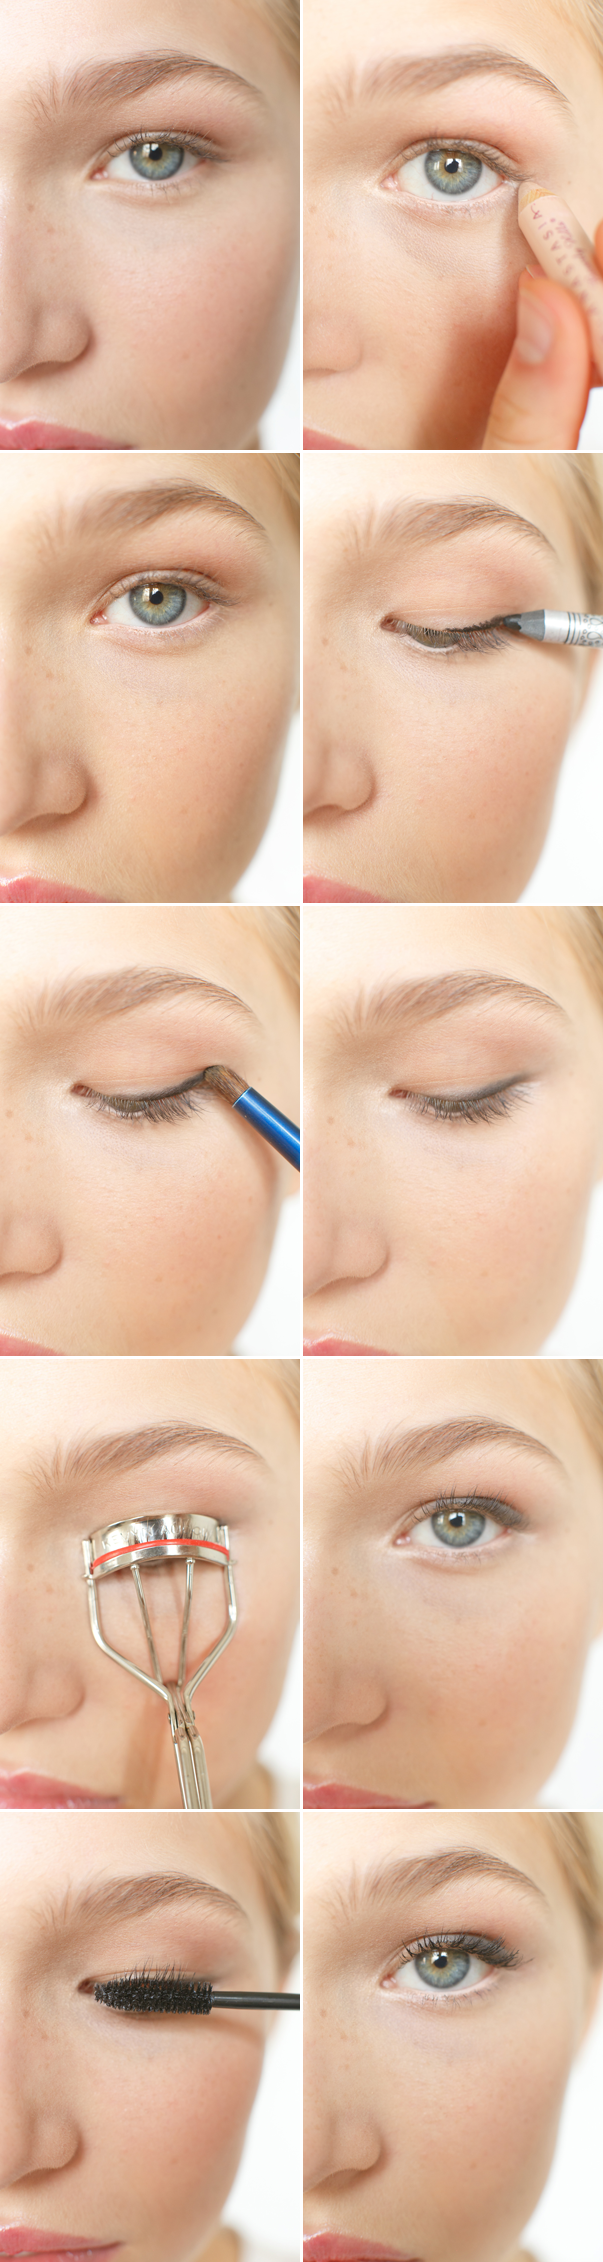 how-to-open-your-eyes-with-makeup-tutorial-amy-clarke-once-wed